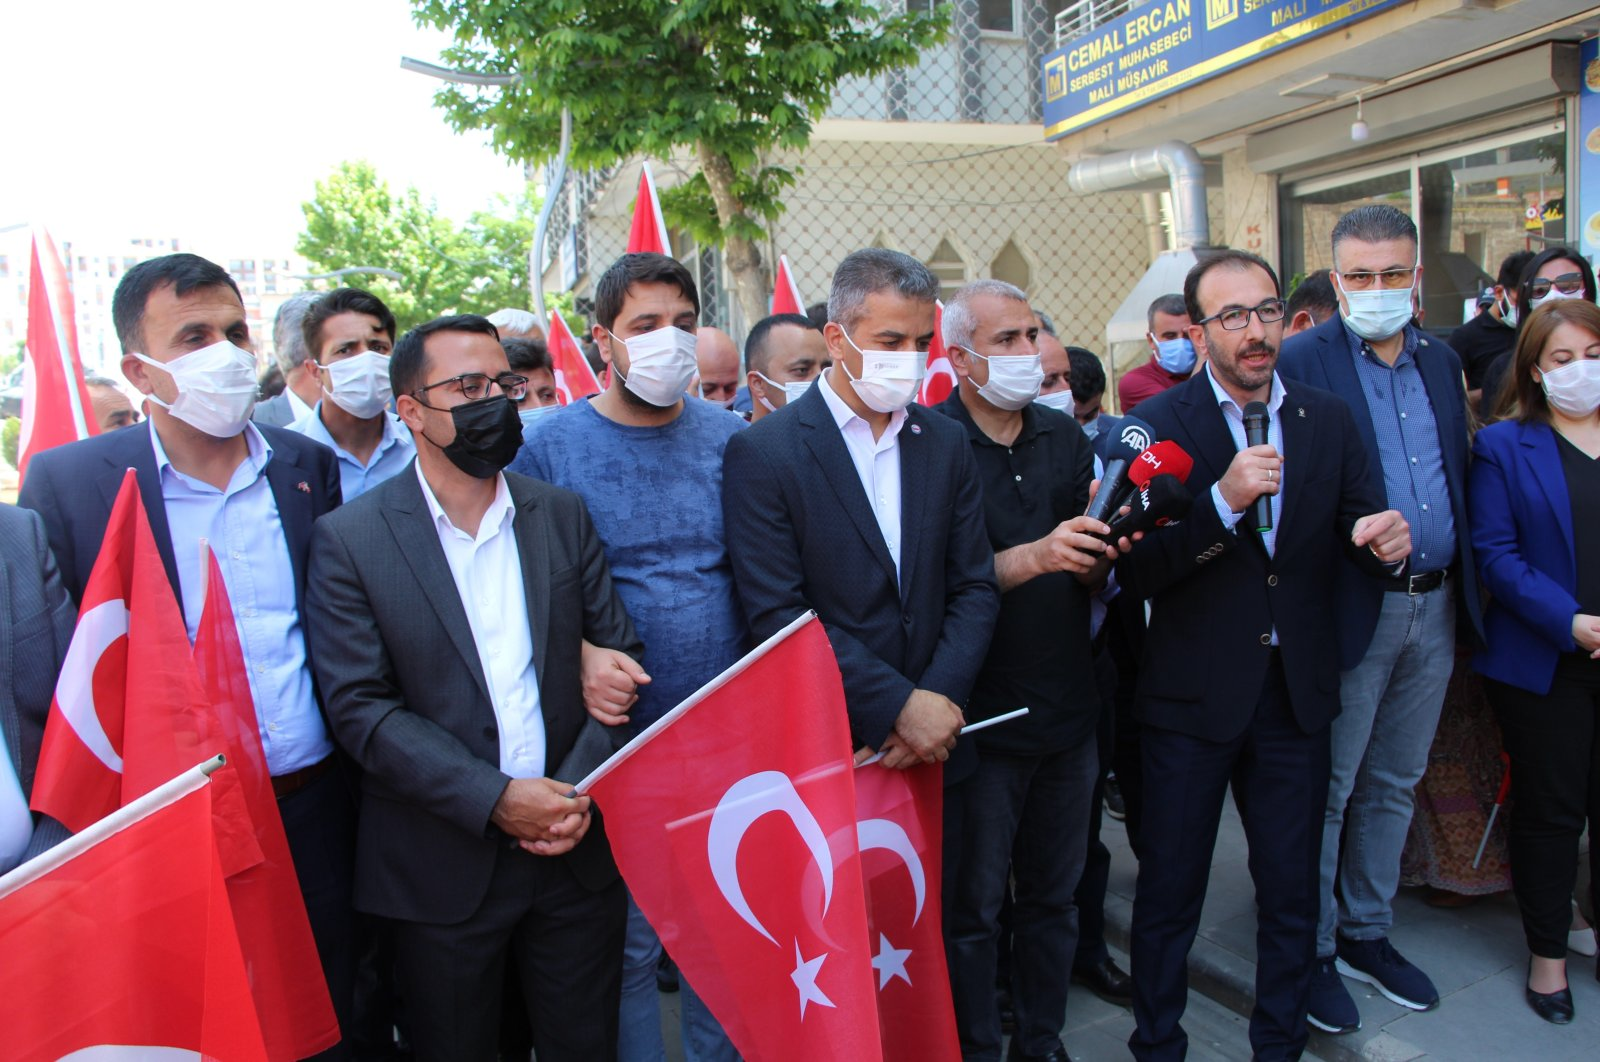 A group of citizens protests the PKK's recent terror attack attempts in southeastern Şırnak province, Turkey, May 21, 2021. (IHA Photo)